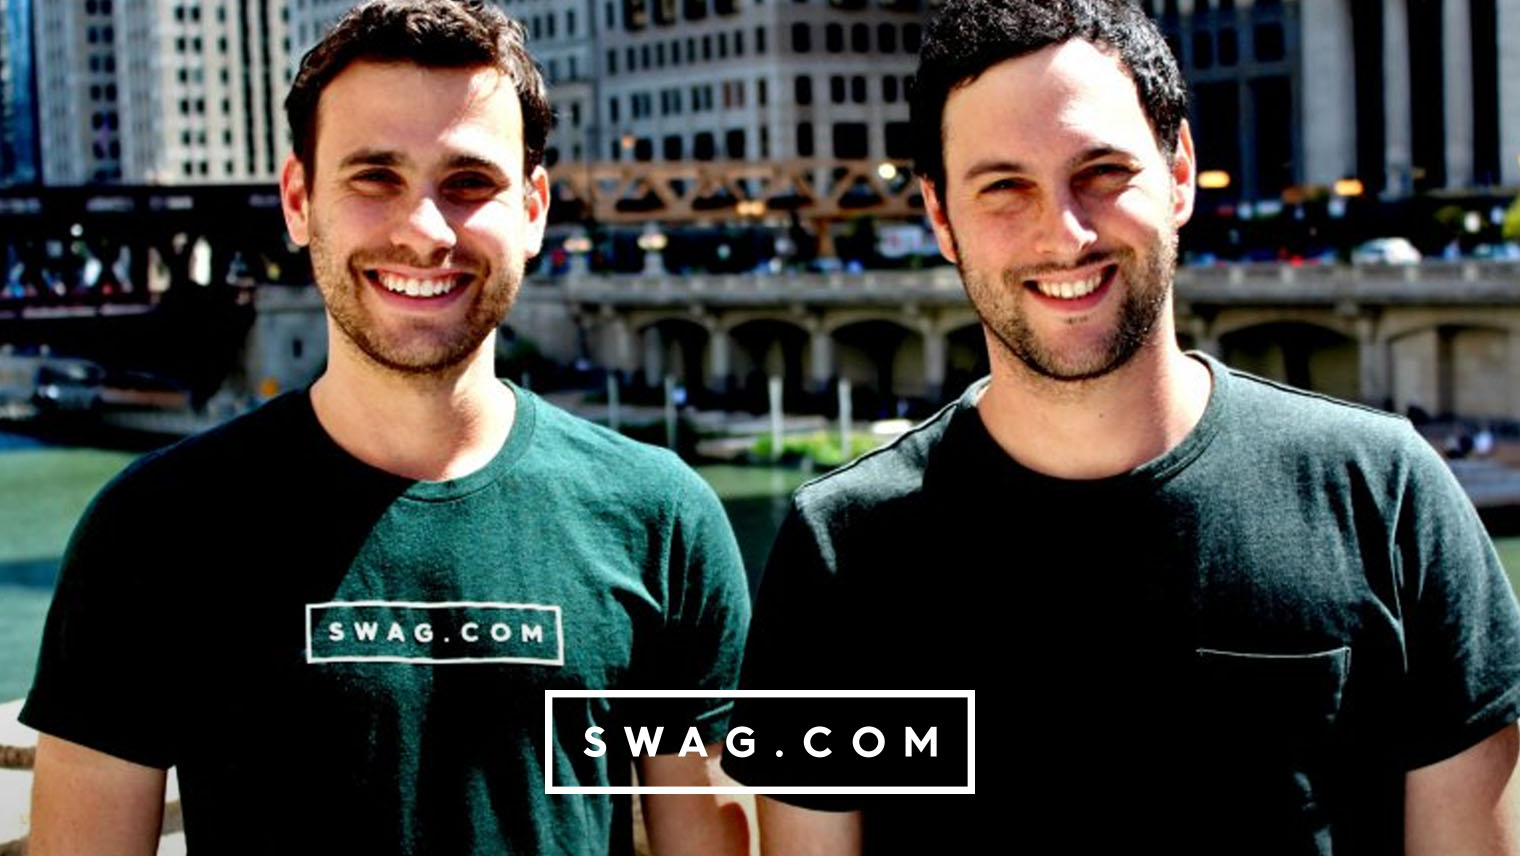 Inc.com Talks About How Swag.com Started Their Promotional Product Business